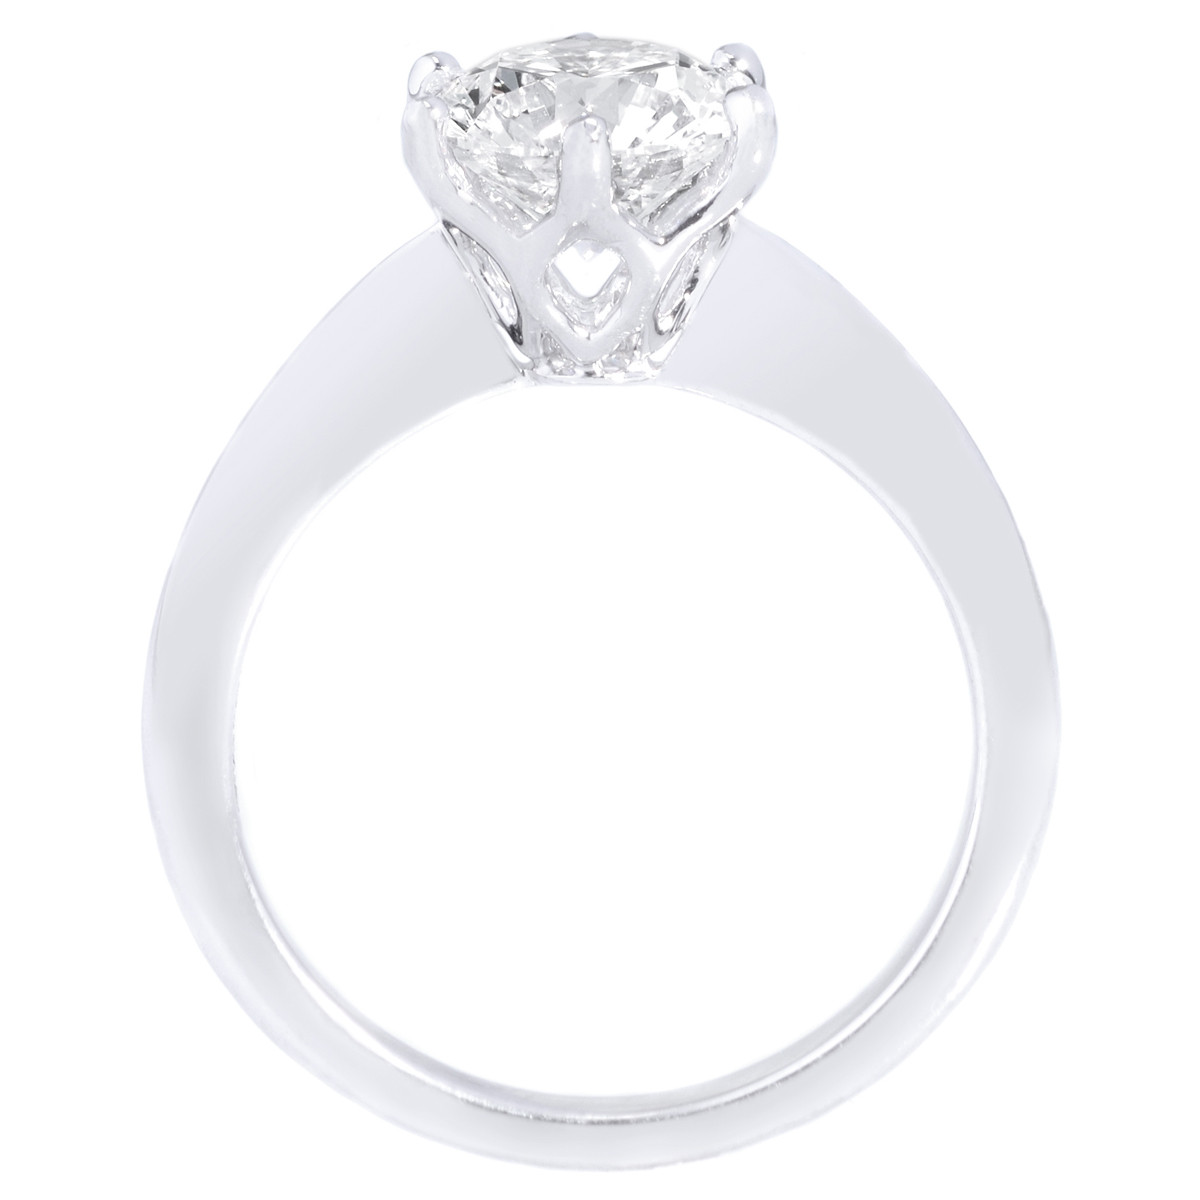 Platinum Six Prong Solitaire Diamond Engagement Ring by Lazare